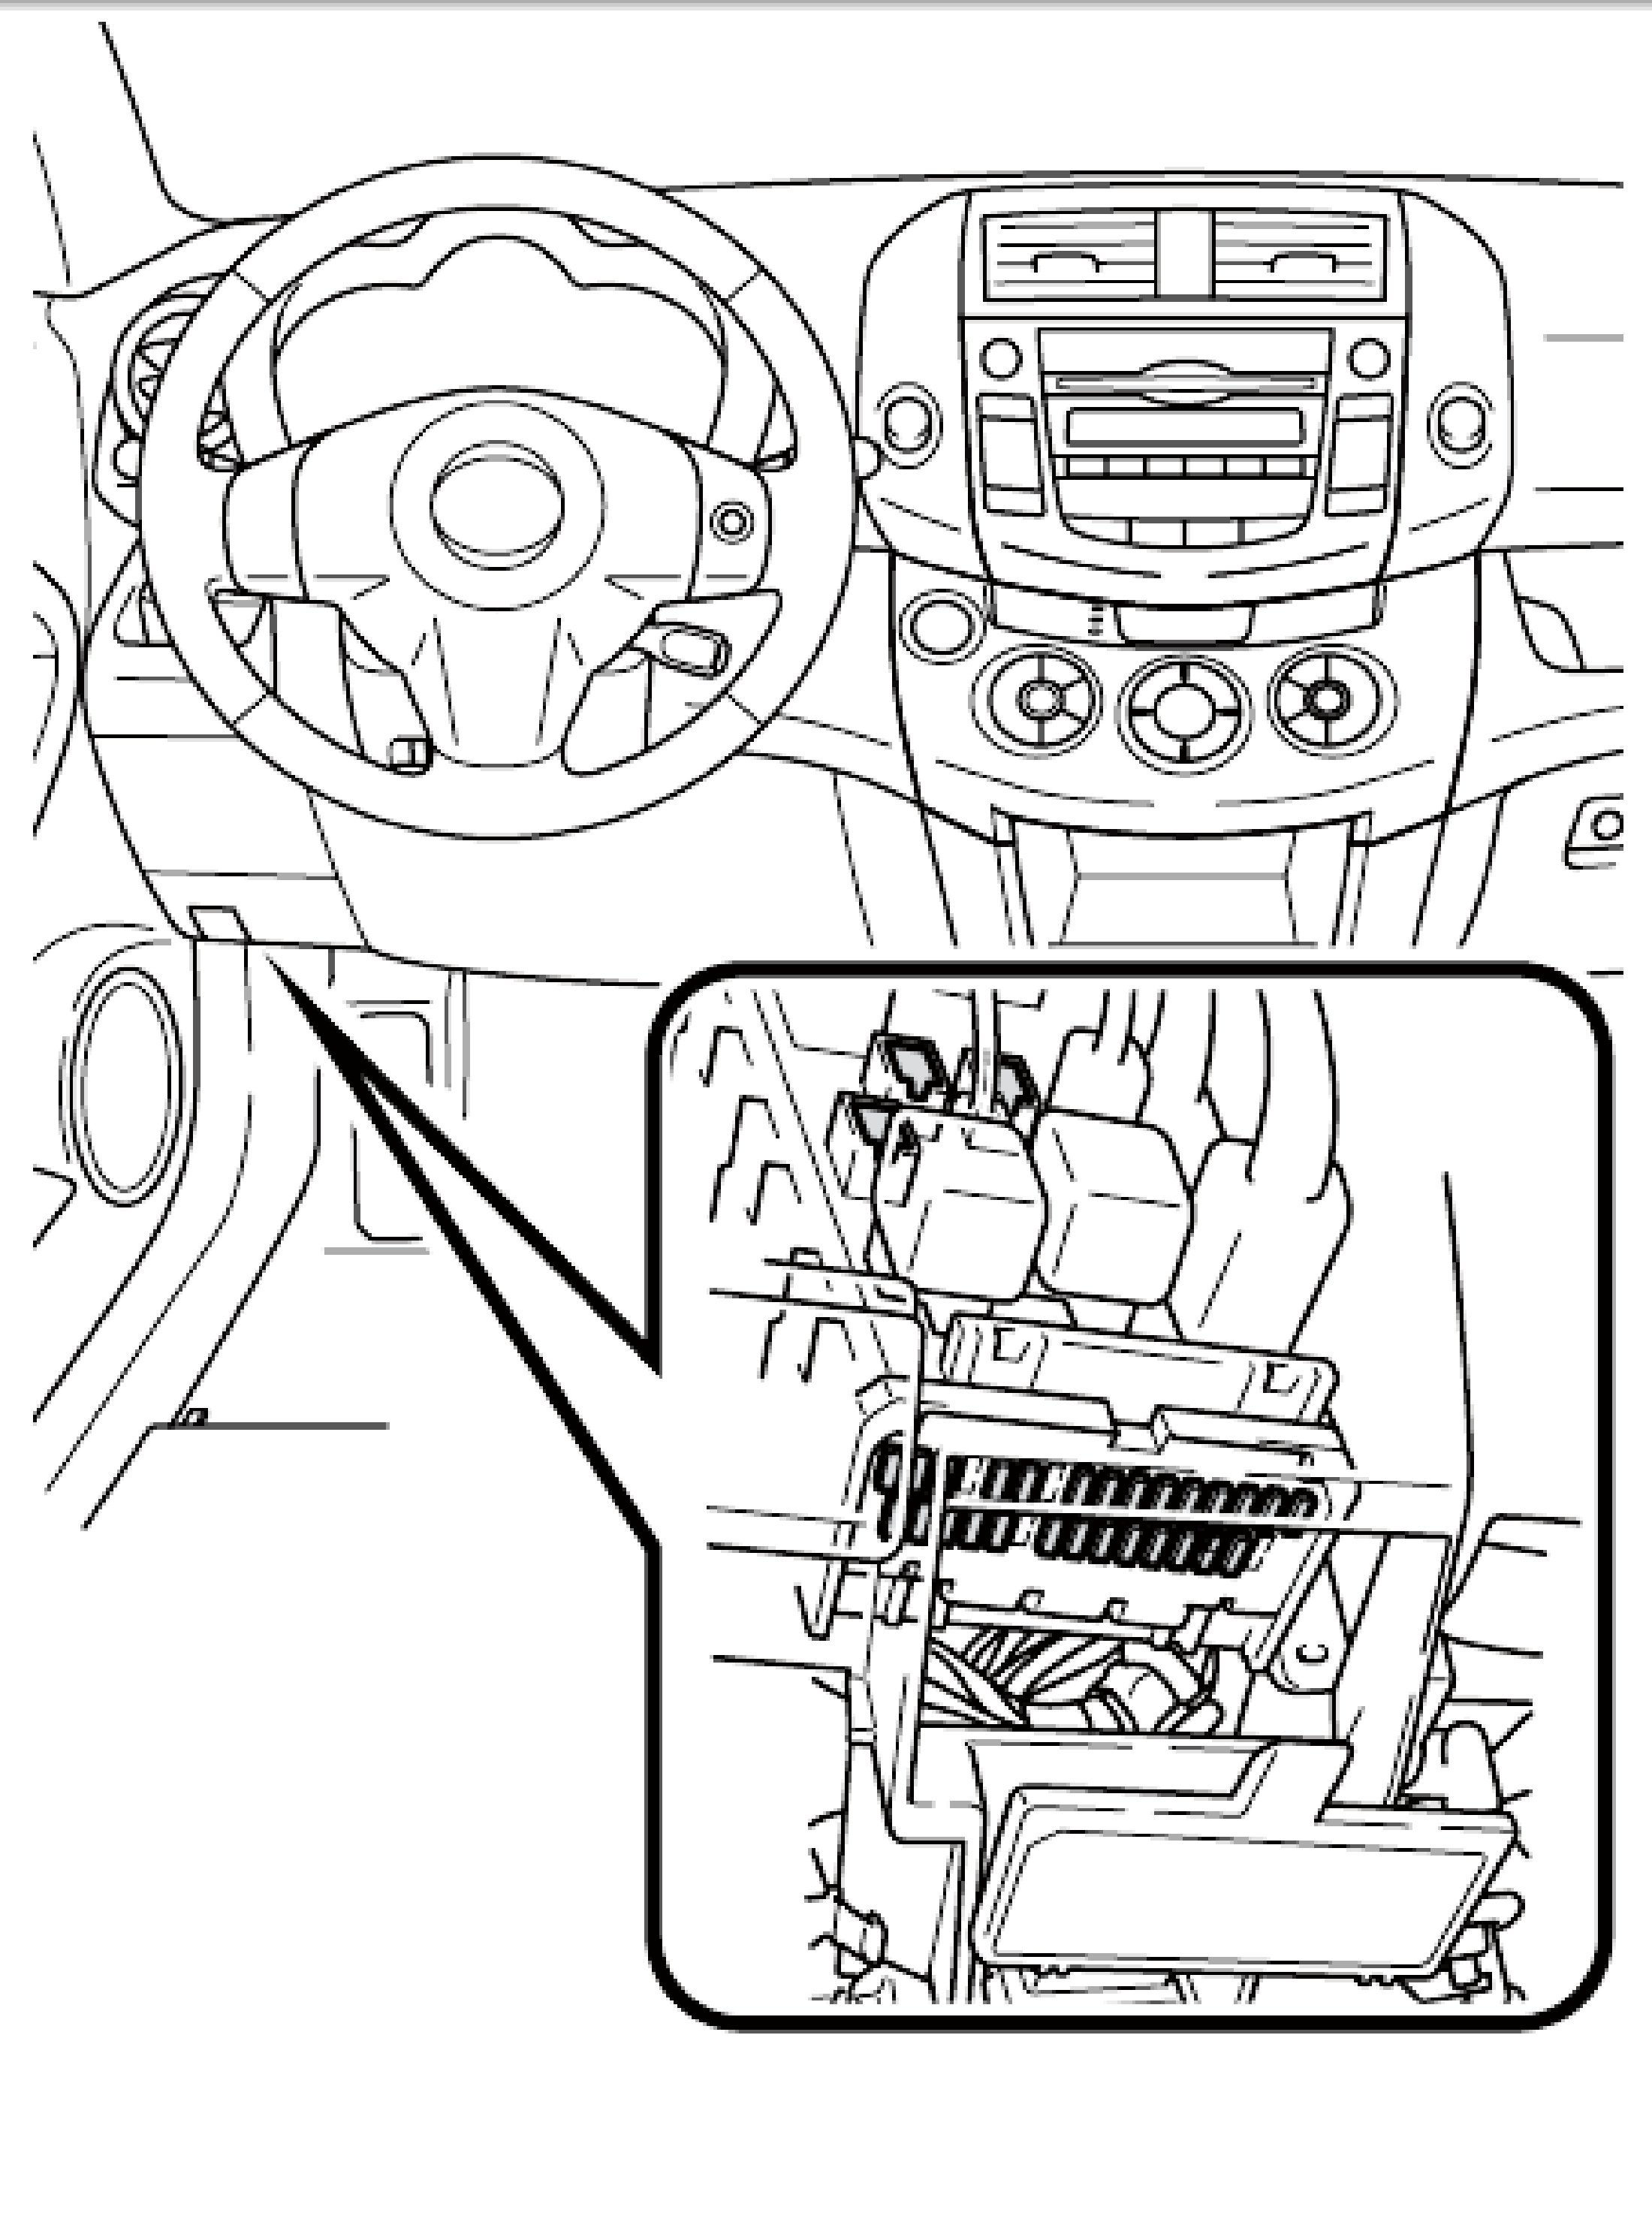 2000 Toyota Avalon Fuse Box Diagram : 35 Wiring Diagram